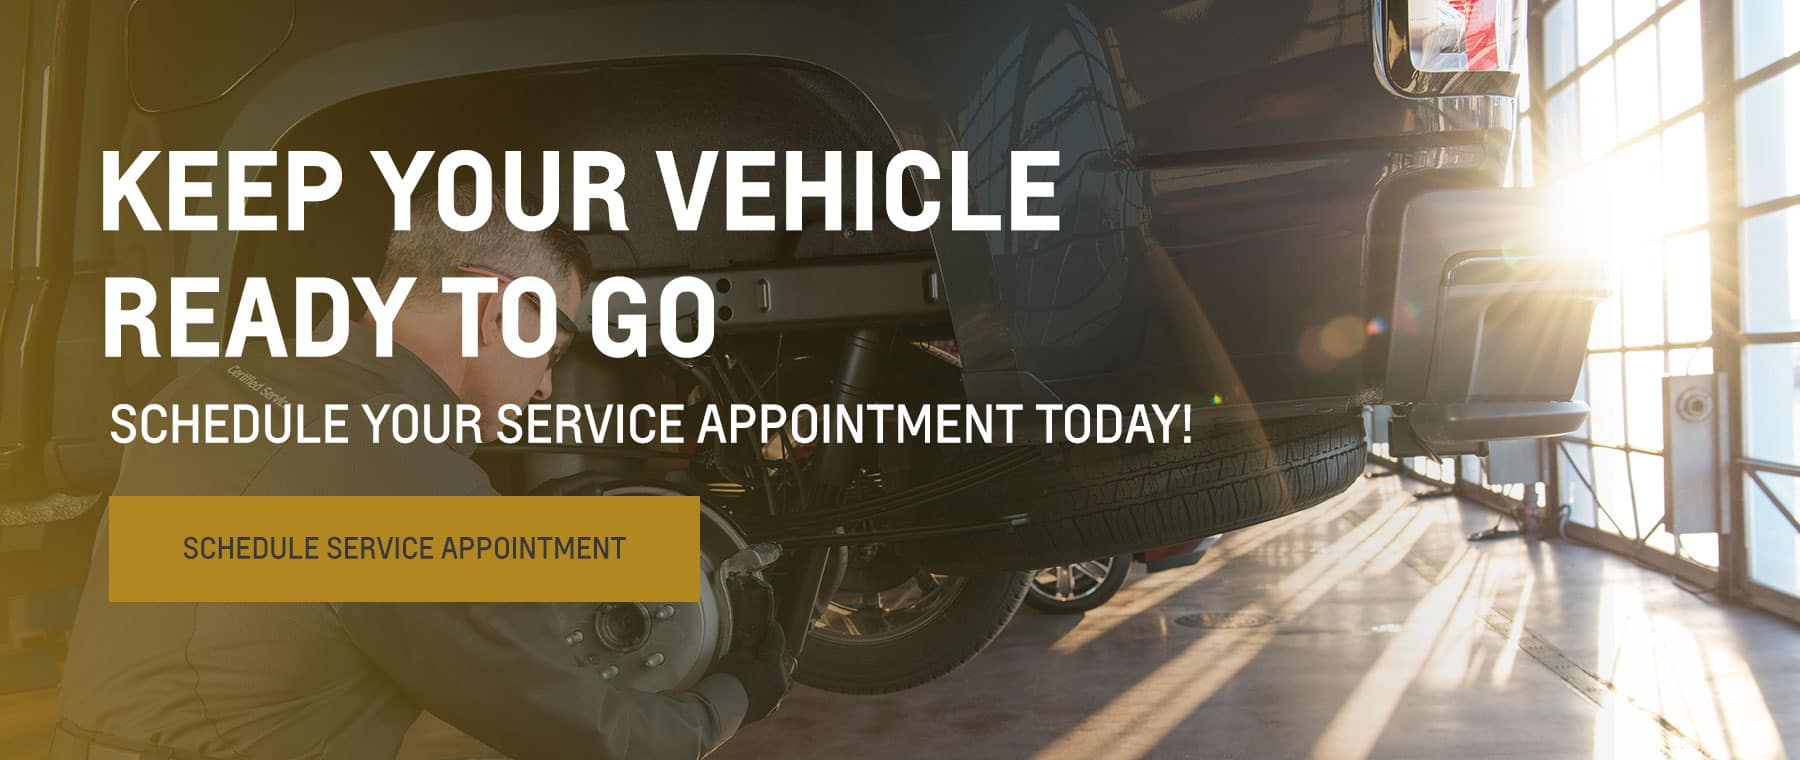 Keep Your Vehicle Ready to Go. Schedule Your Service Appointment Today!